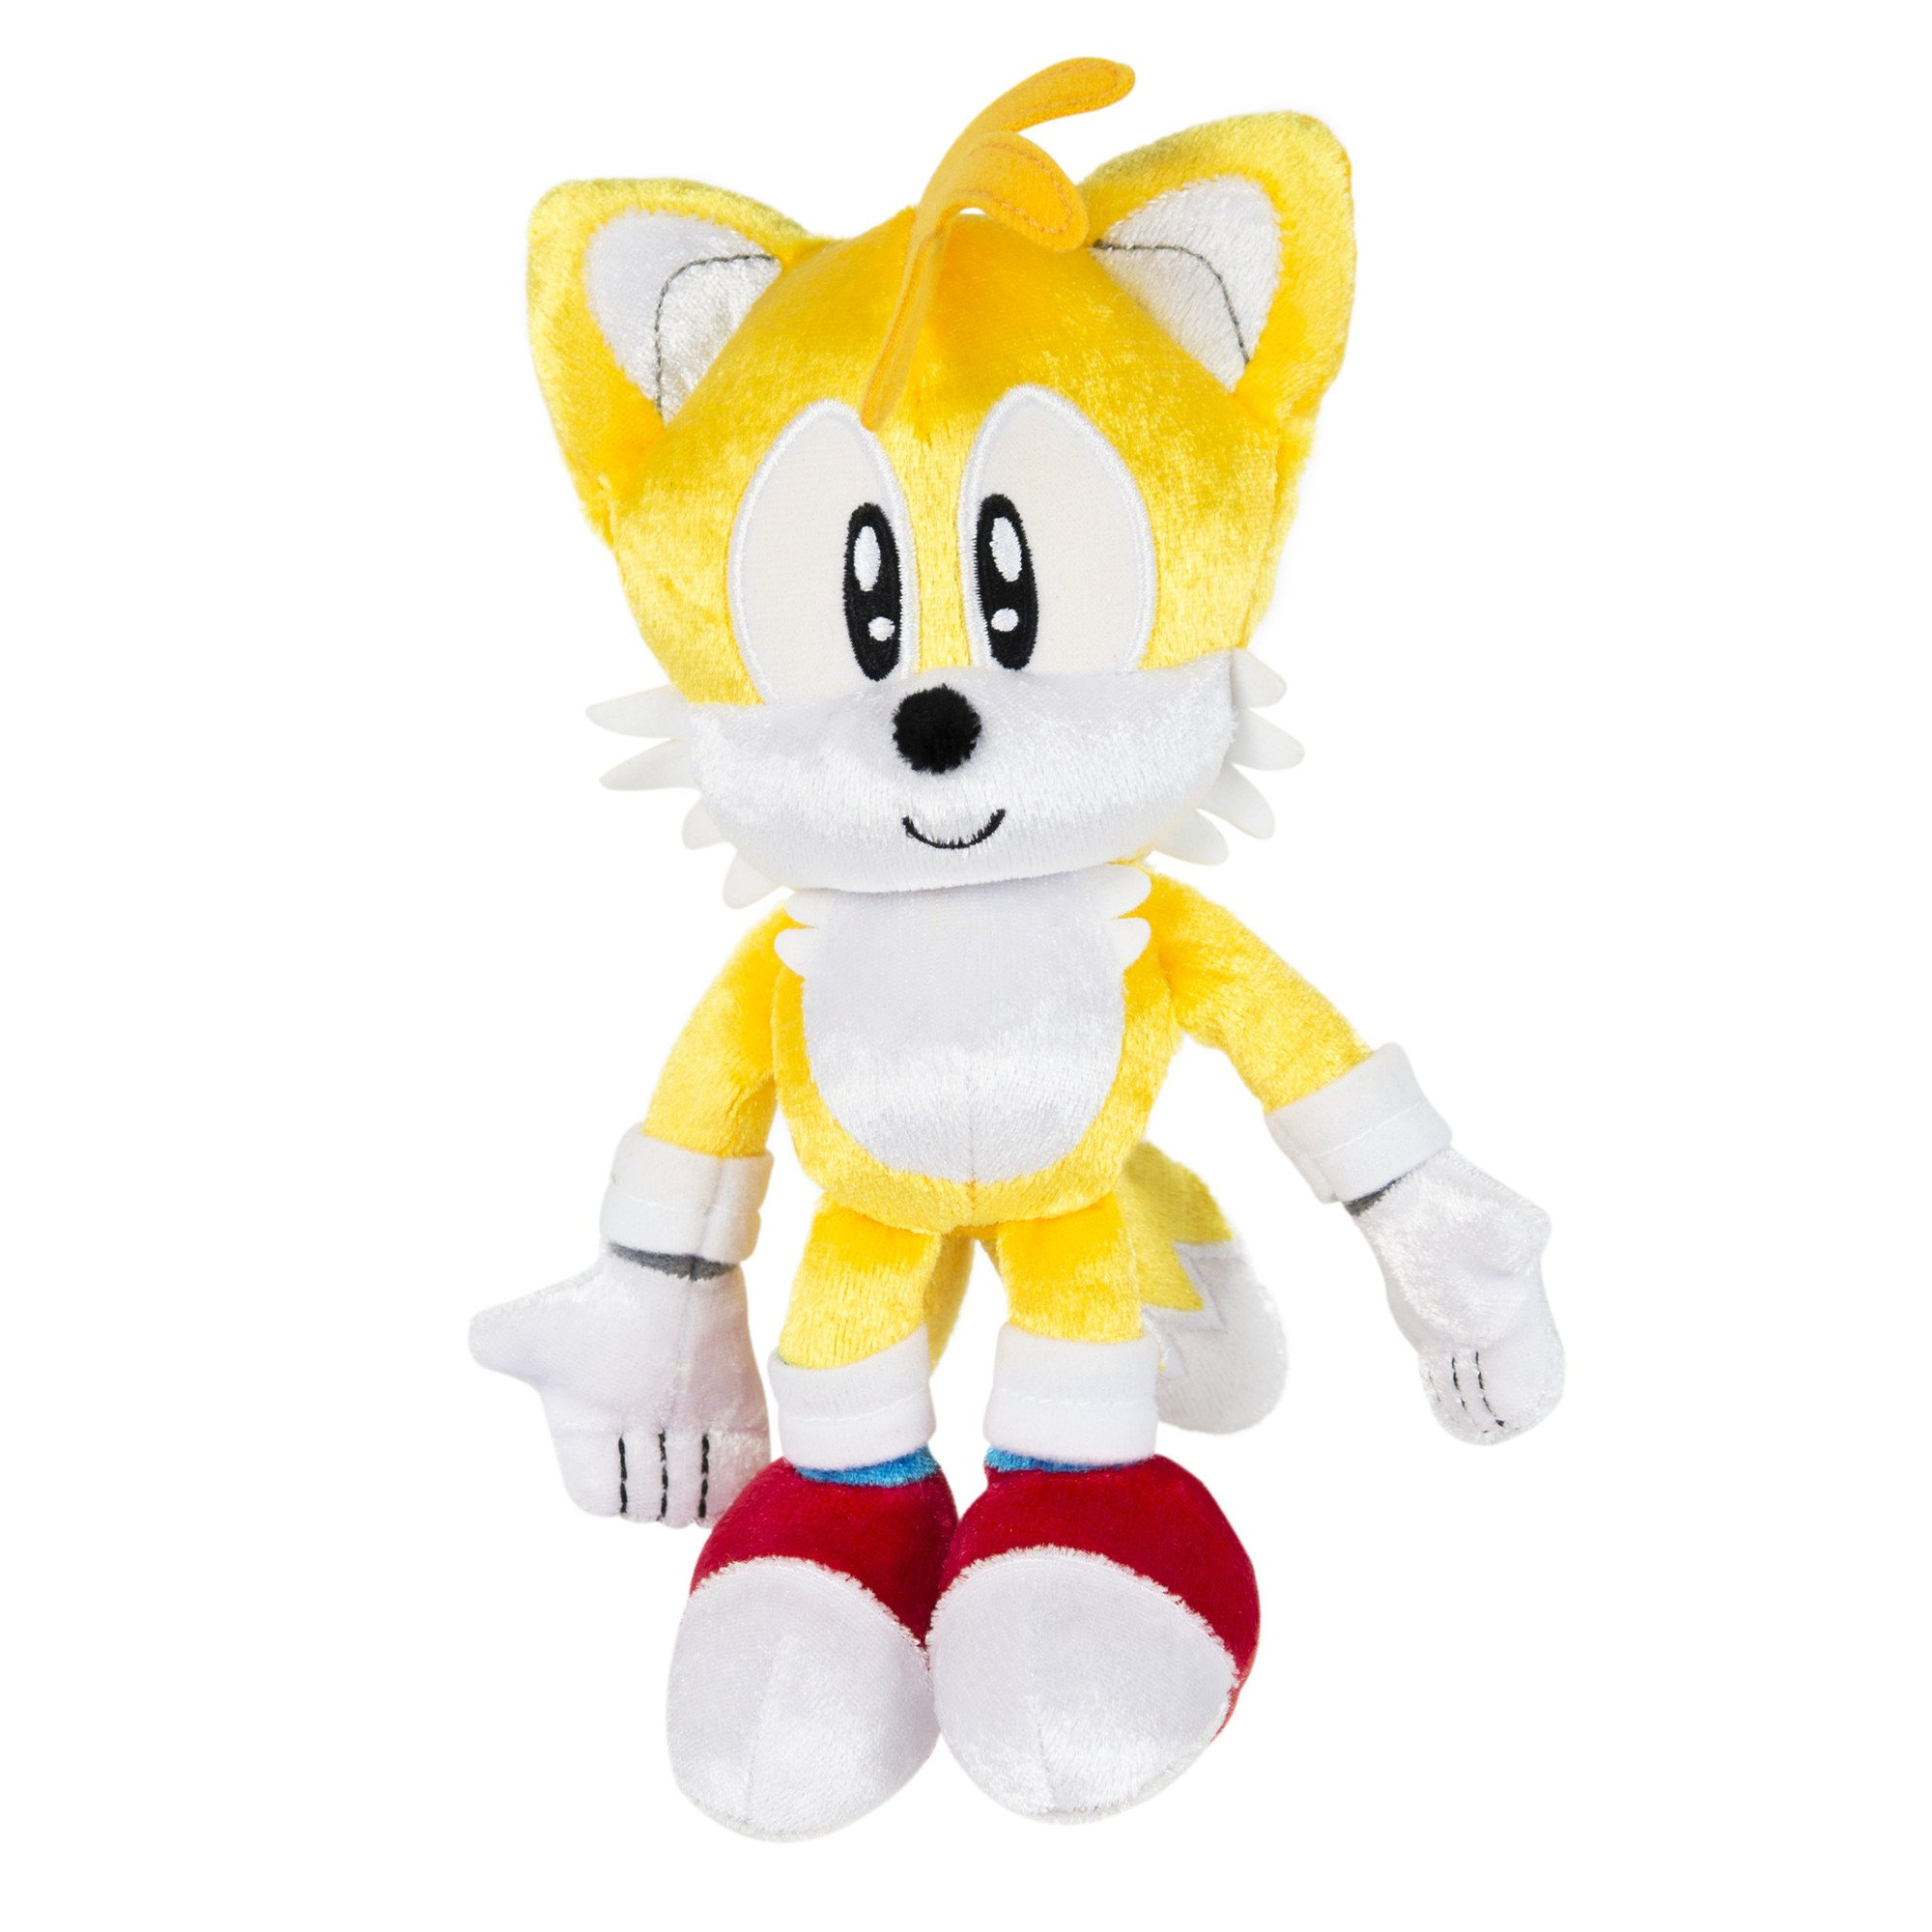 Sonic 25th Anniversary Small Plush, 1992 Tails by TOMY